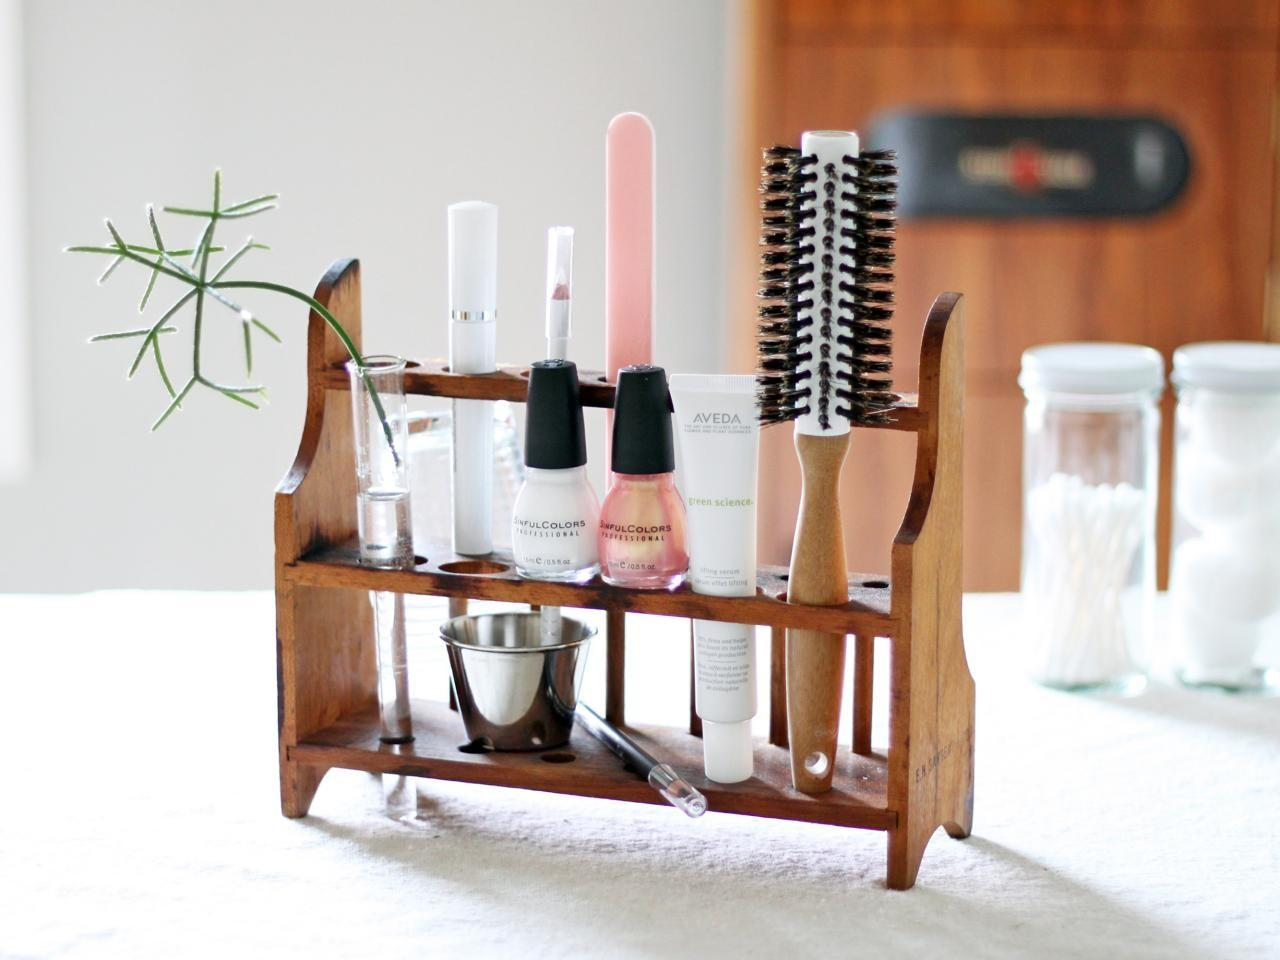 Repurposing Everyday Items More Organized Home